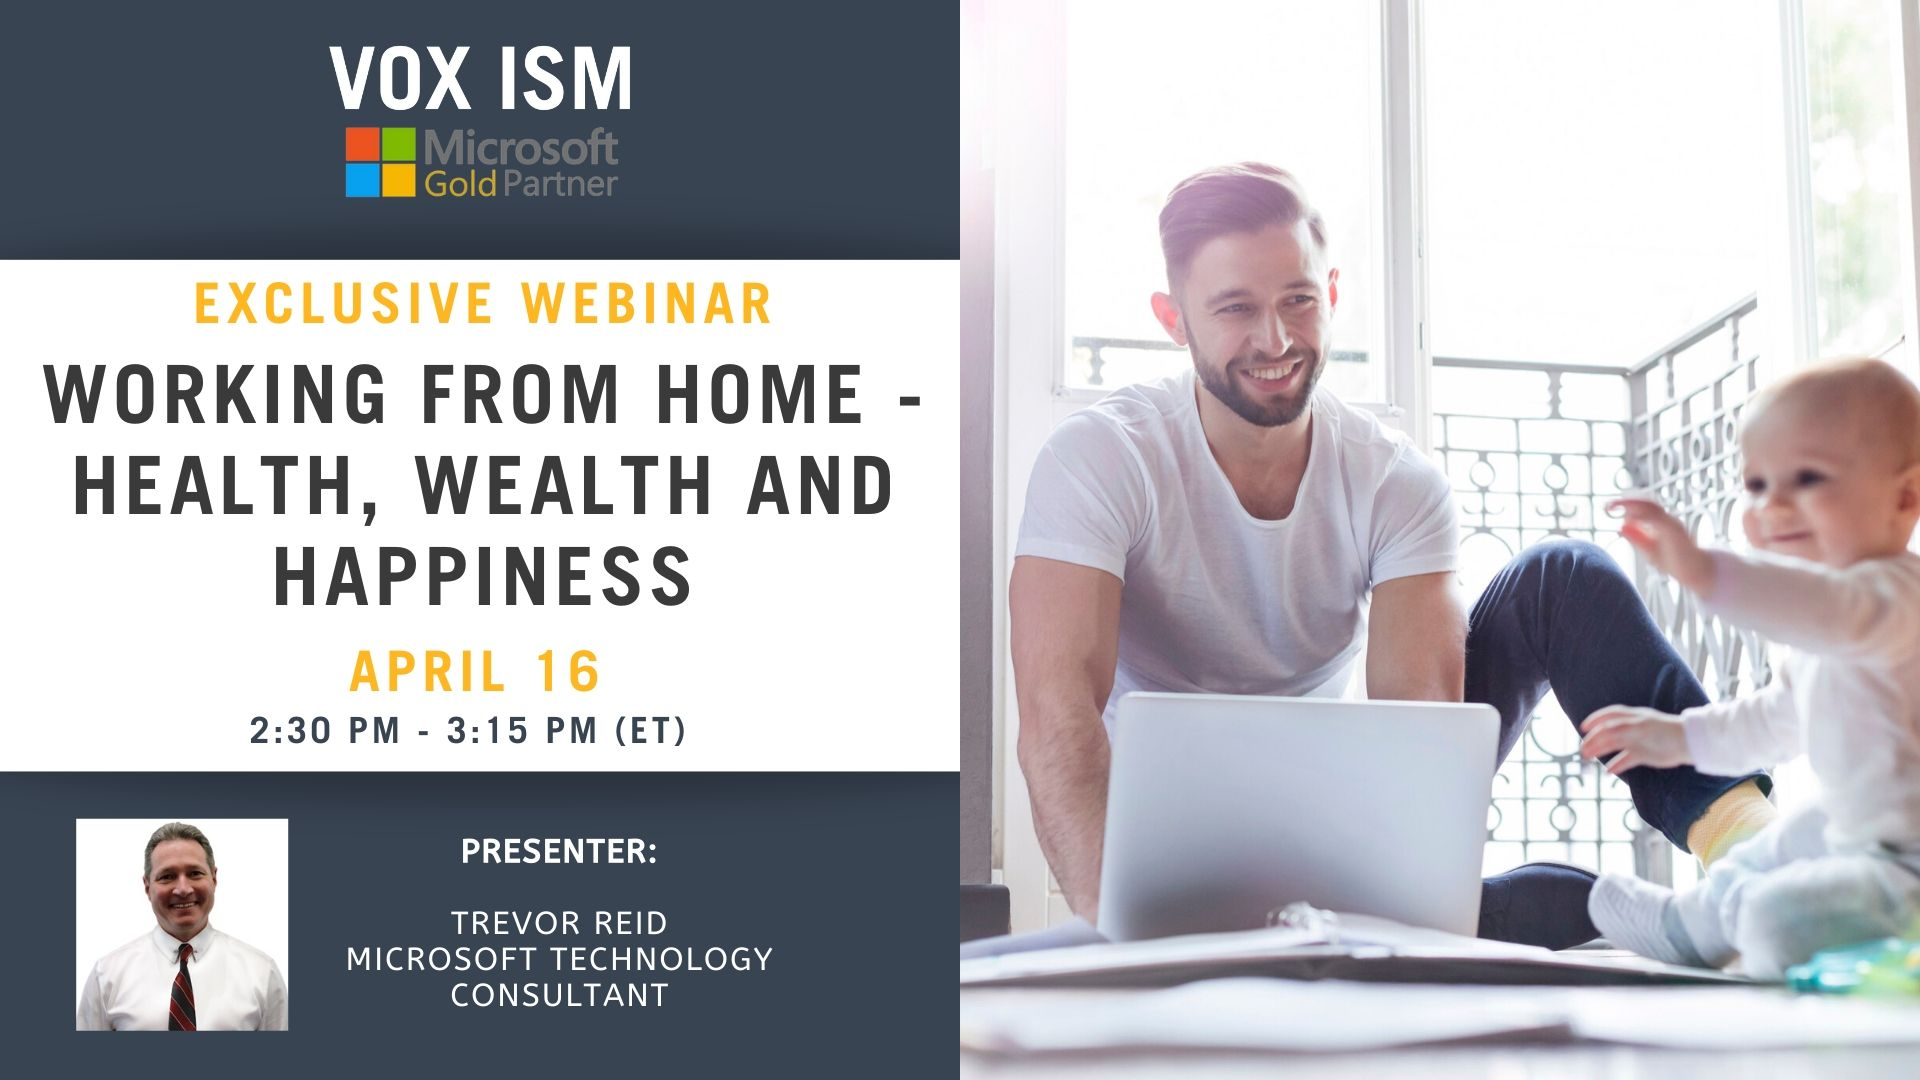 Working from Home - Health, Wealth and Happiness - April 16 - Webinar_VOX ISM